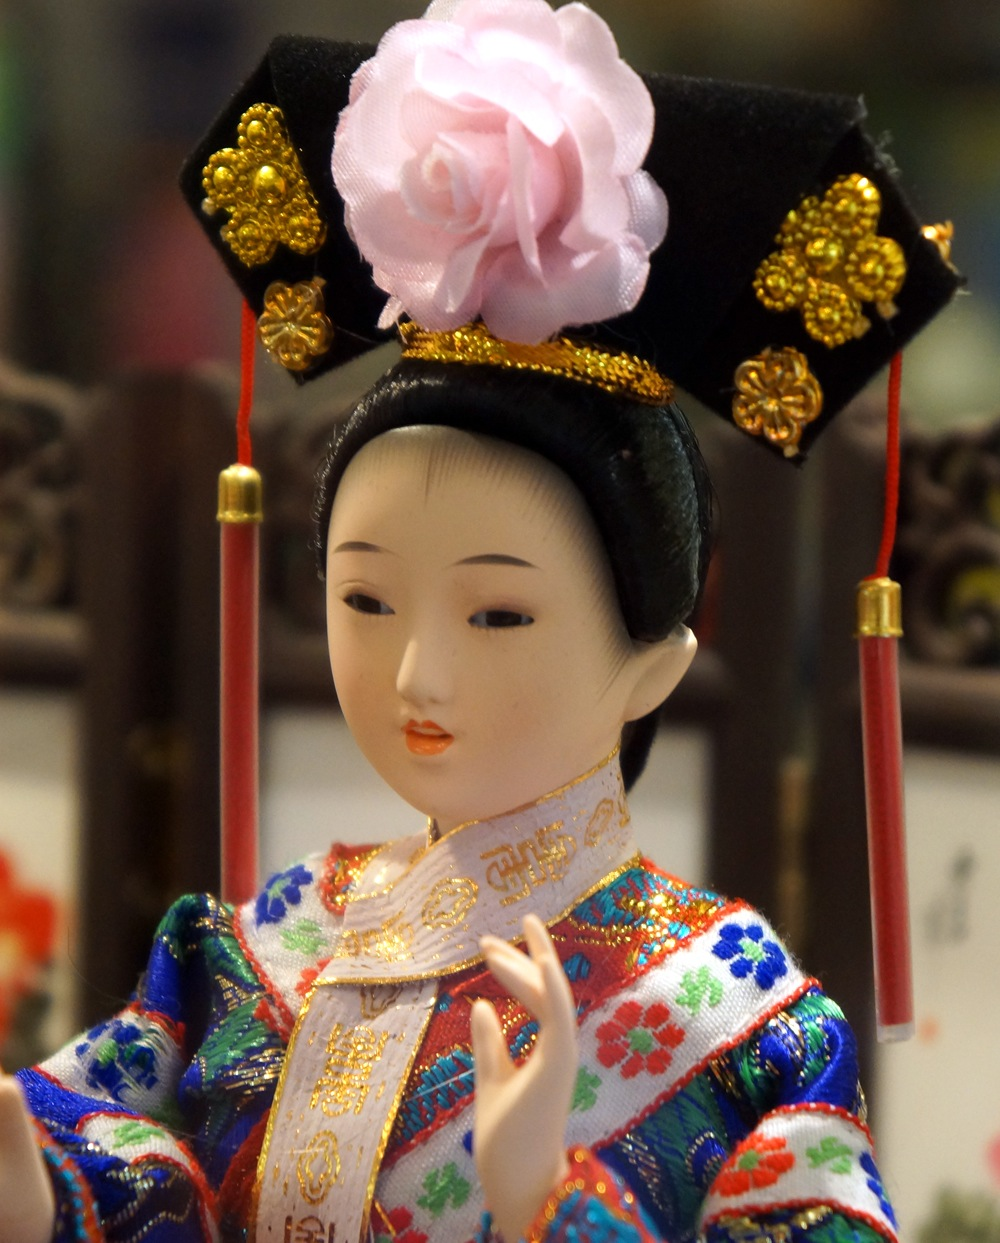 Japanese Doll Sony-nex-7-japanese doll 2.jpg: galleryhip.com/japanese-doll.html